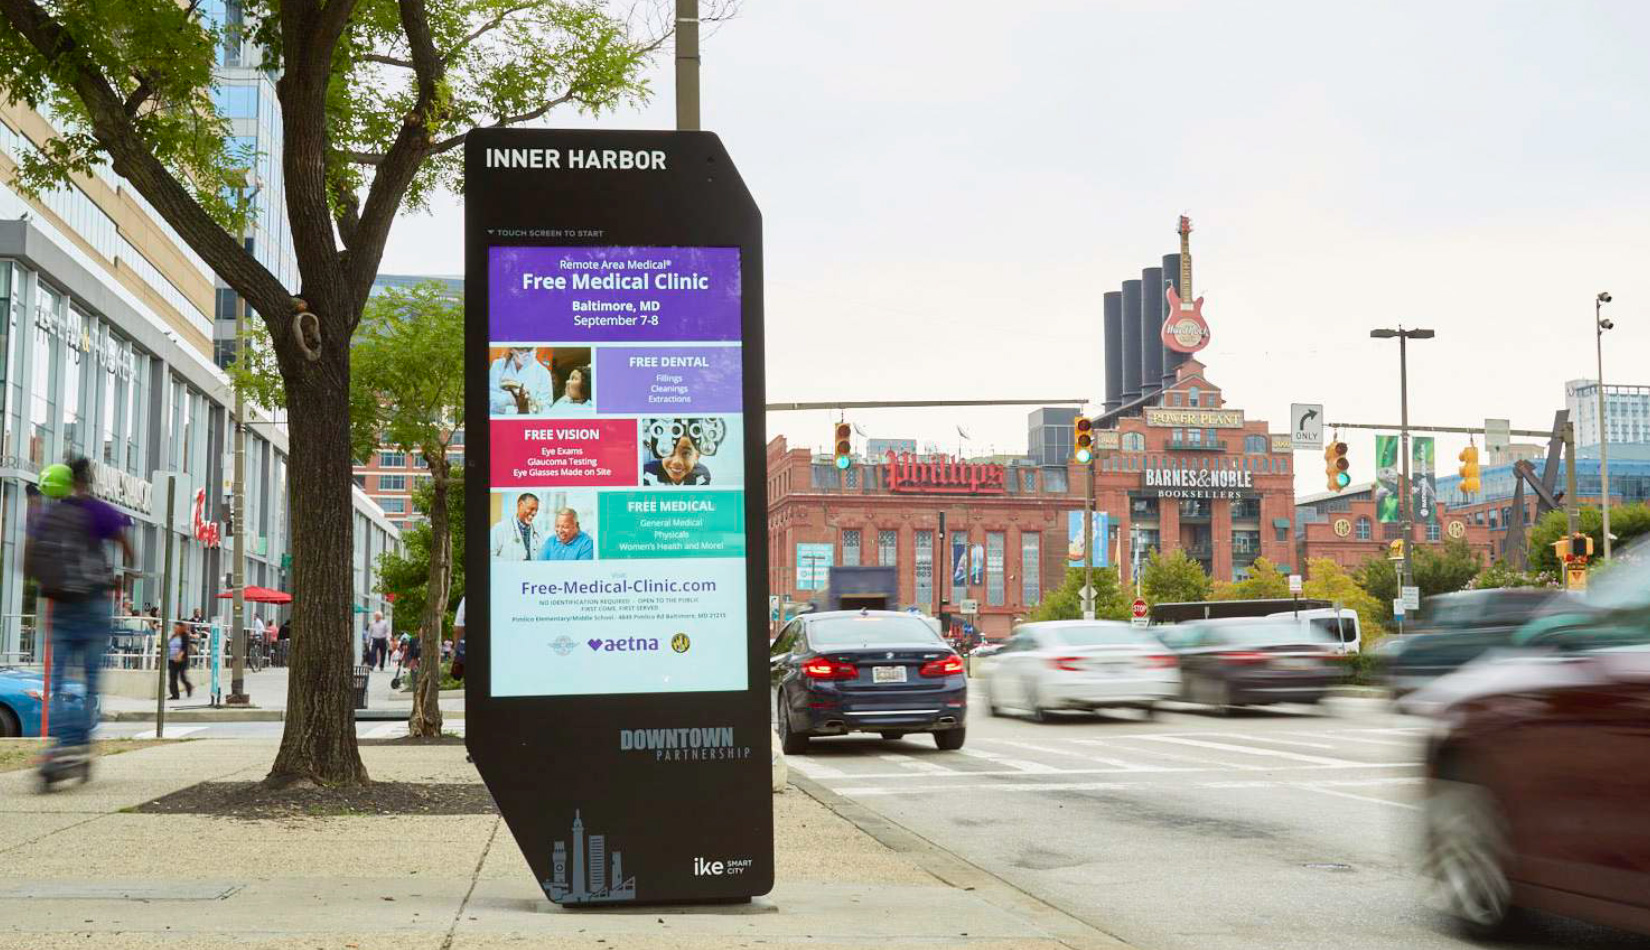 Remote Access Medical digital billboard at the Inner Harbor